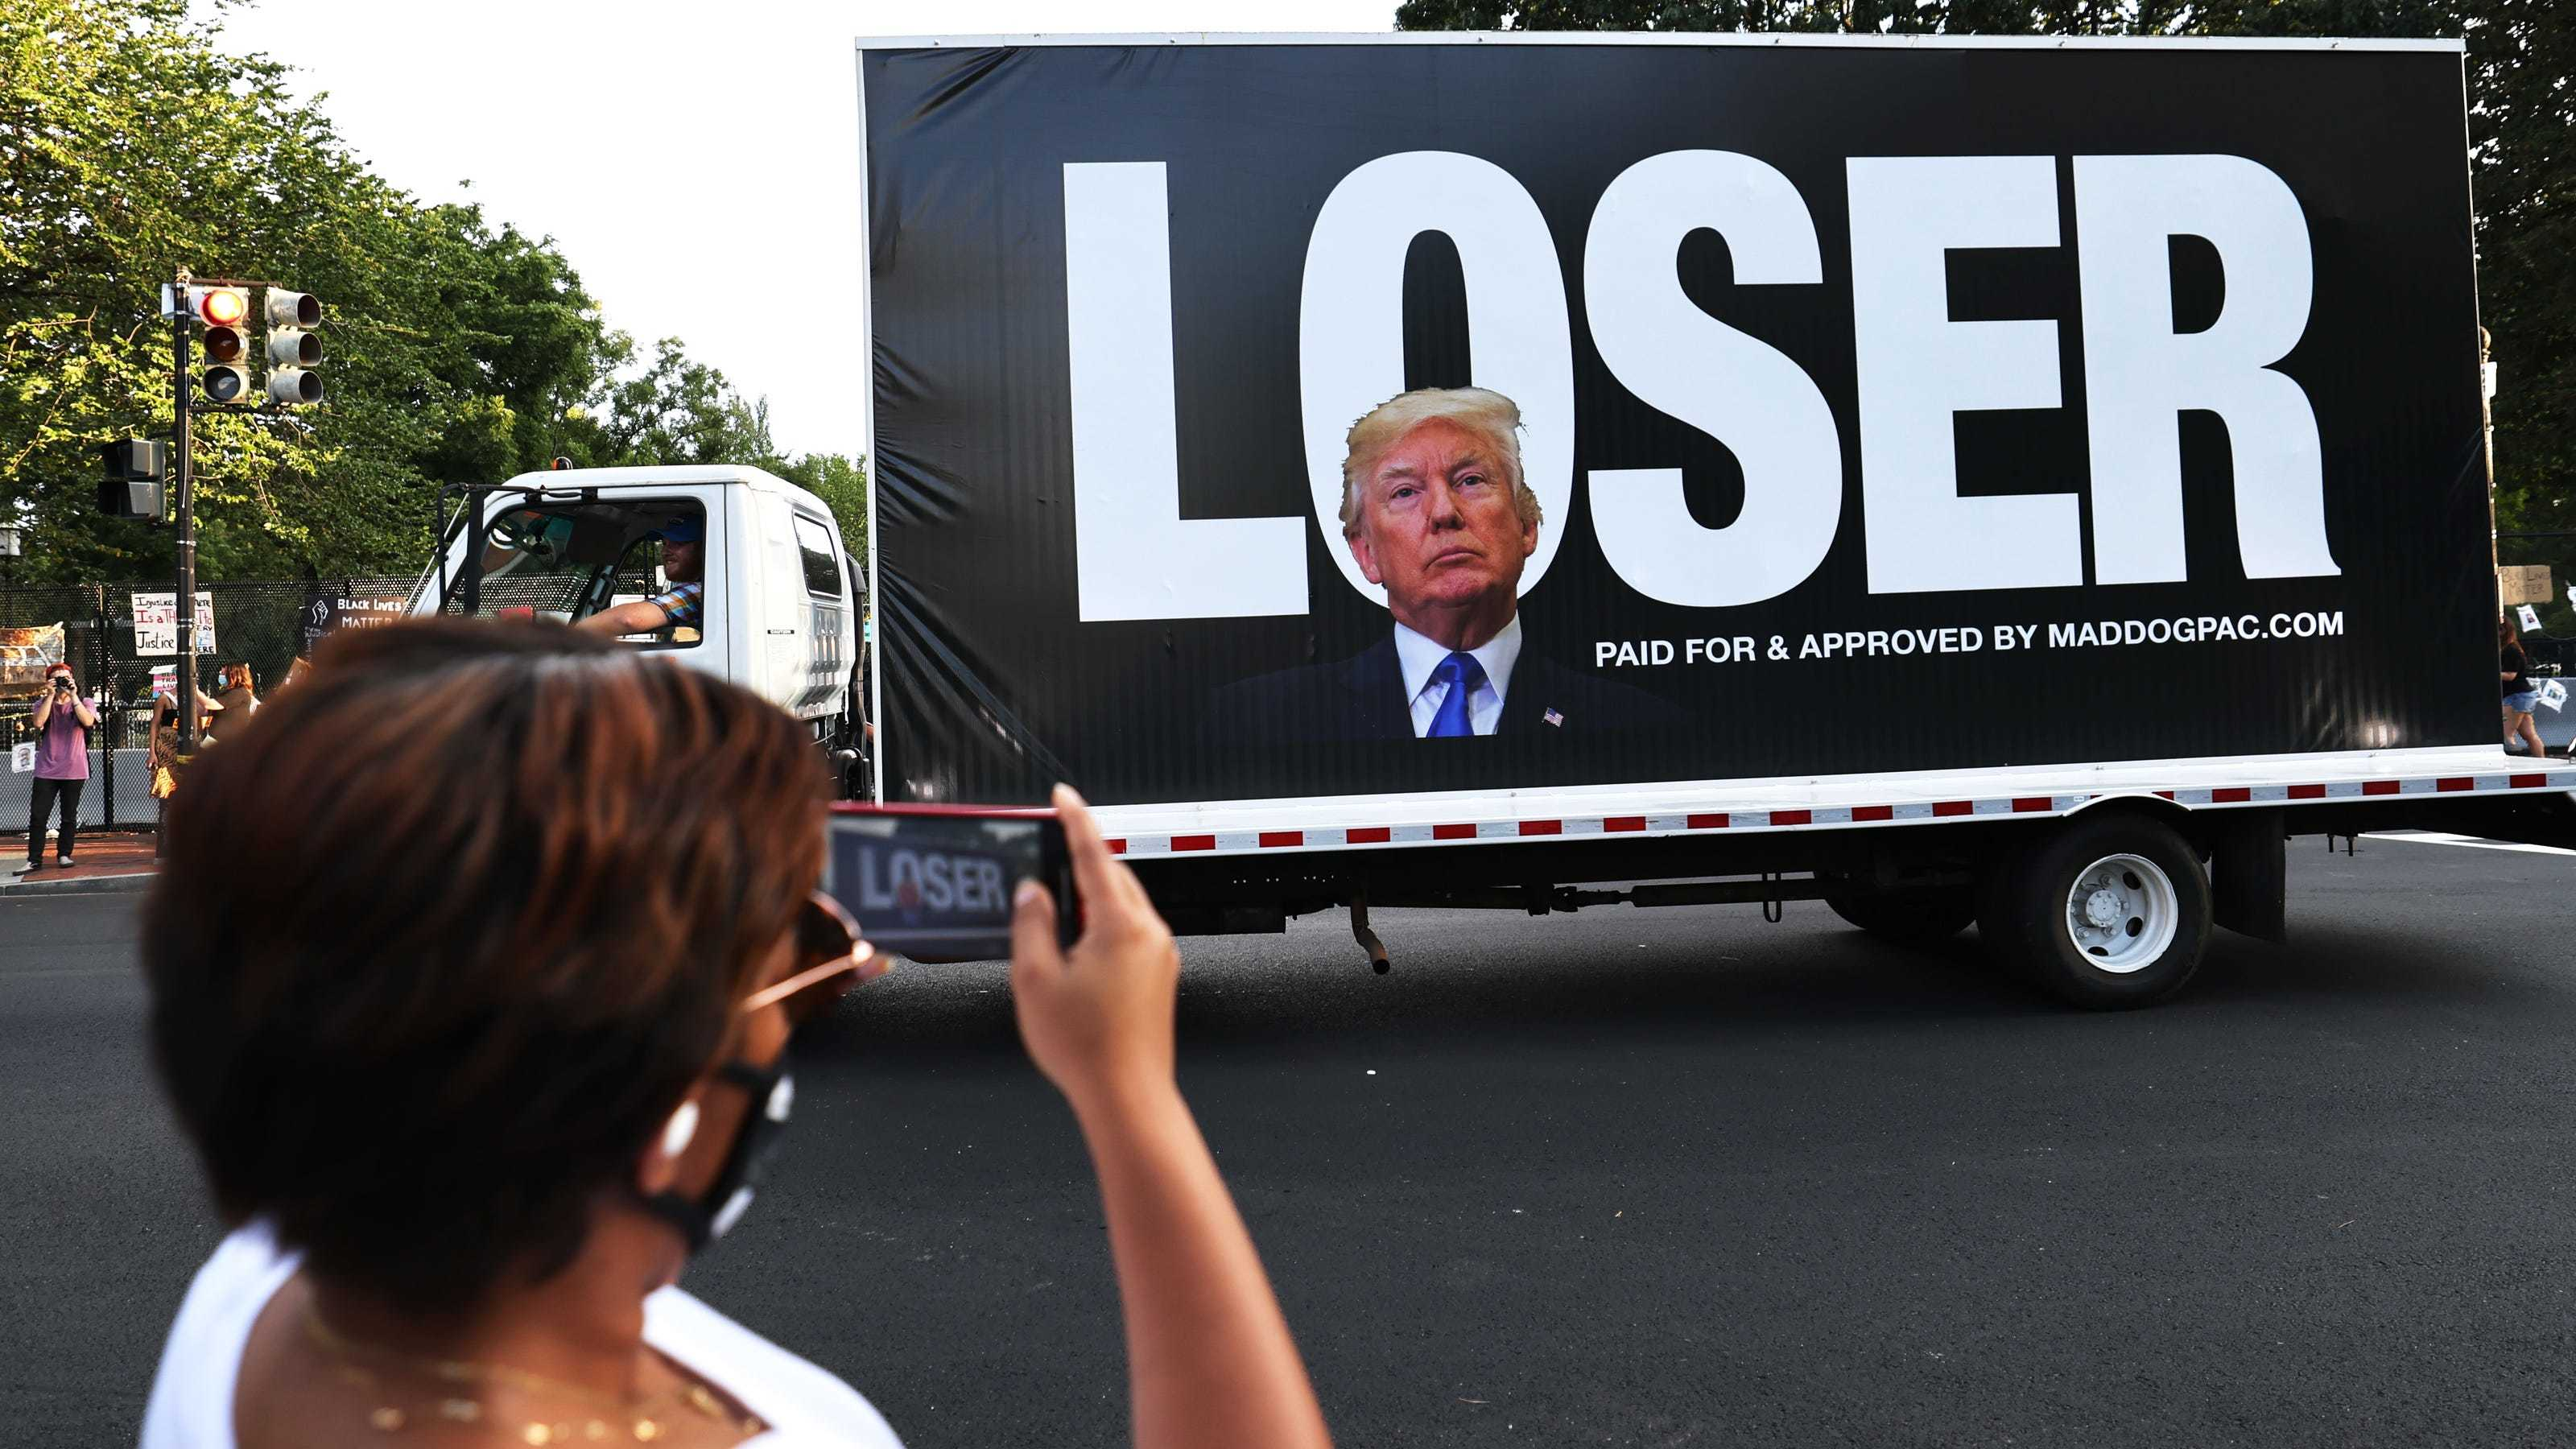 Loser Billboard